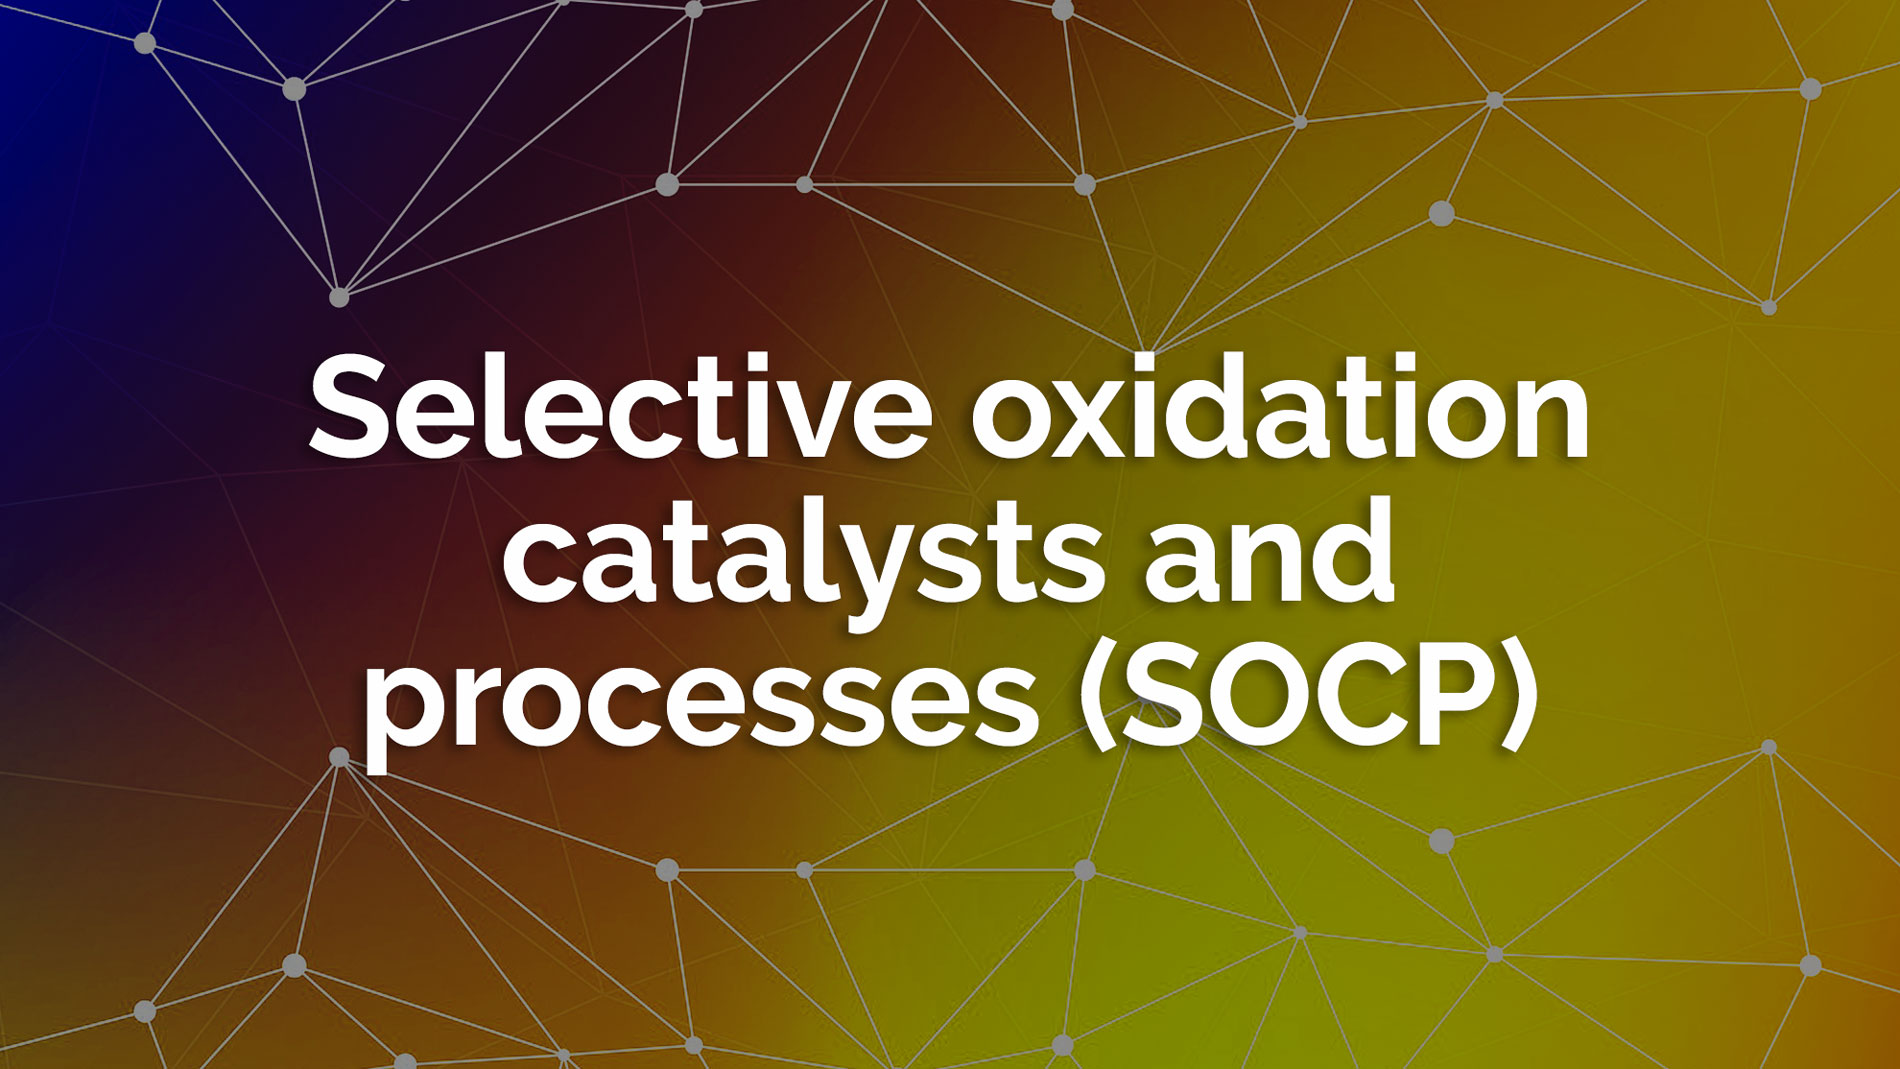 Selective oxidation catalysts processes